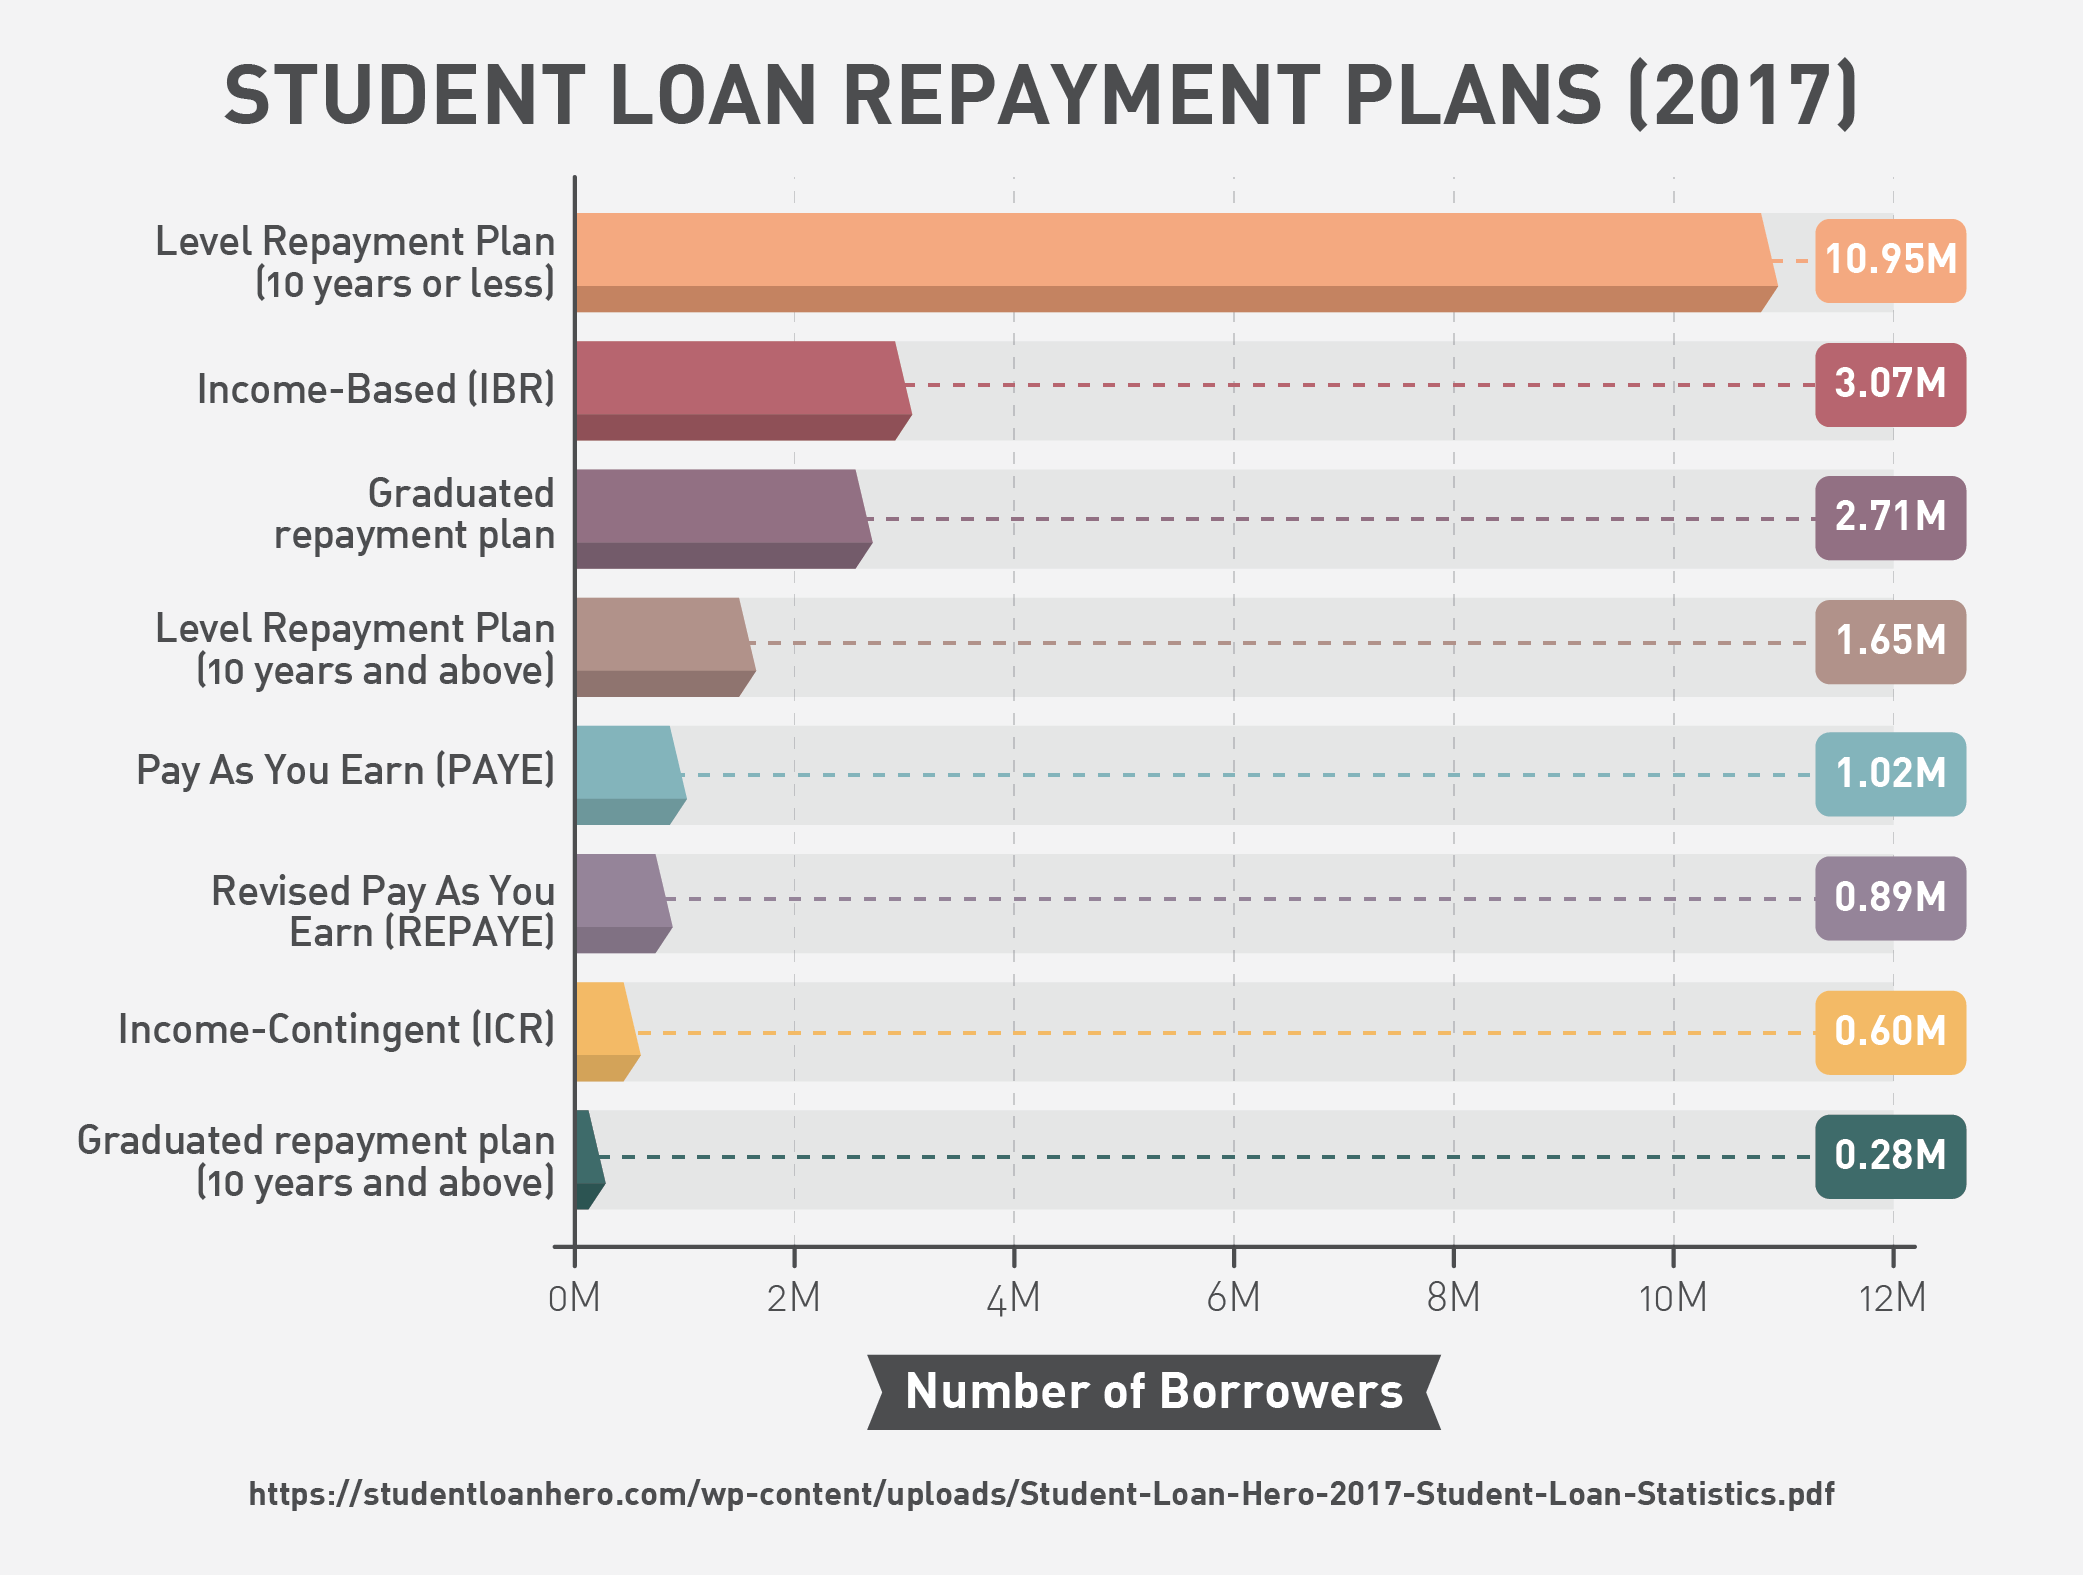 Student Loan Repayment Plan (2017)